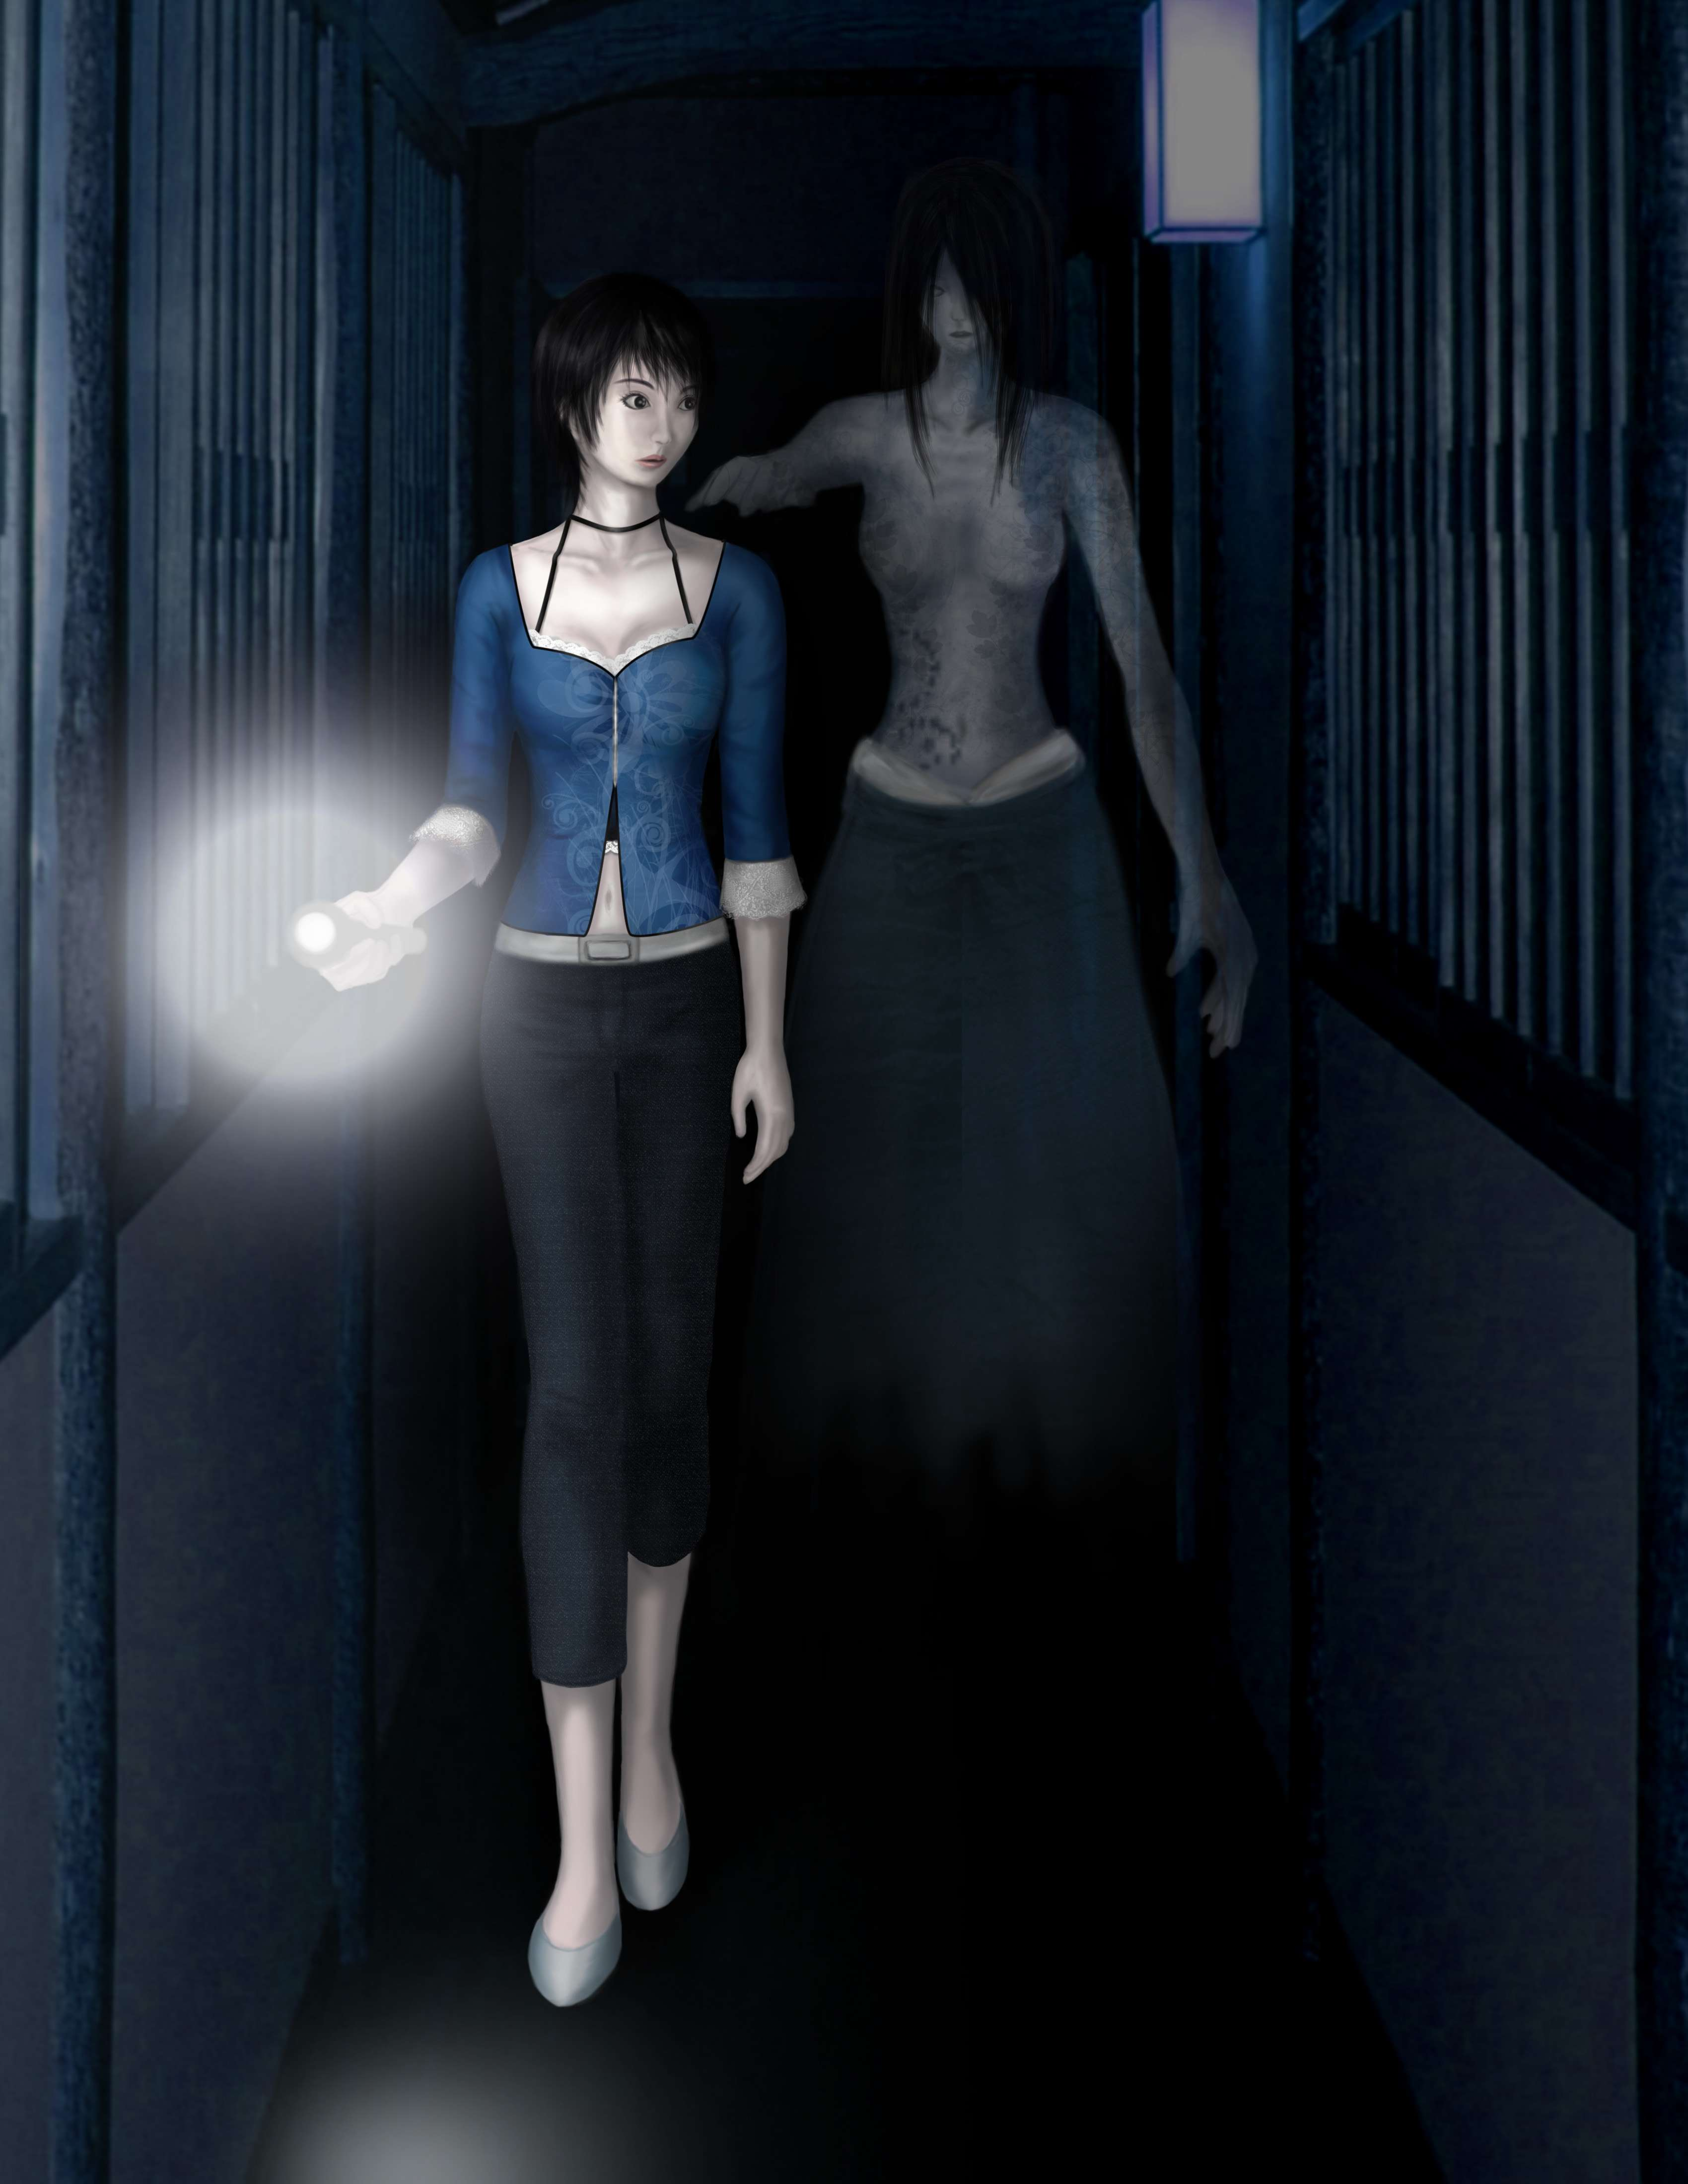 Fatal Frame 3DS Spin-off Announced | popgeeks.net